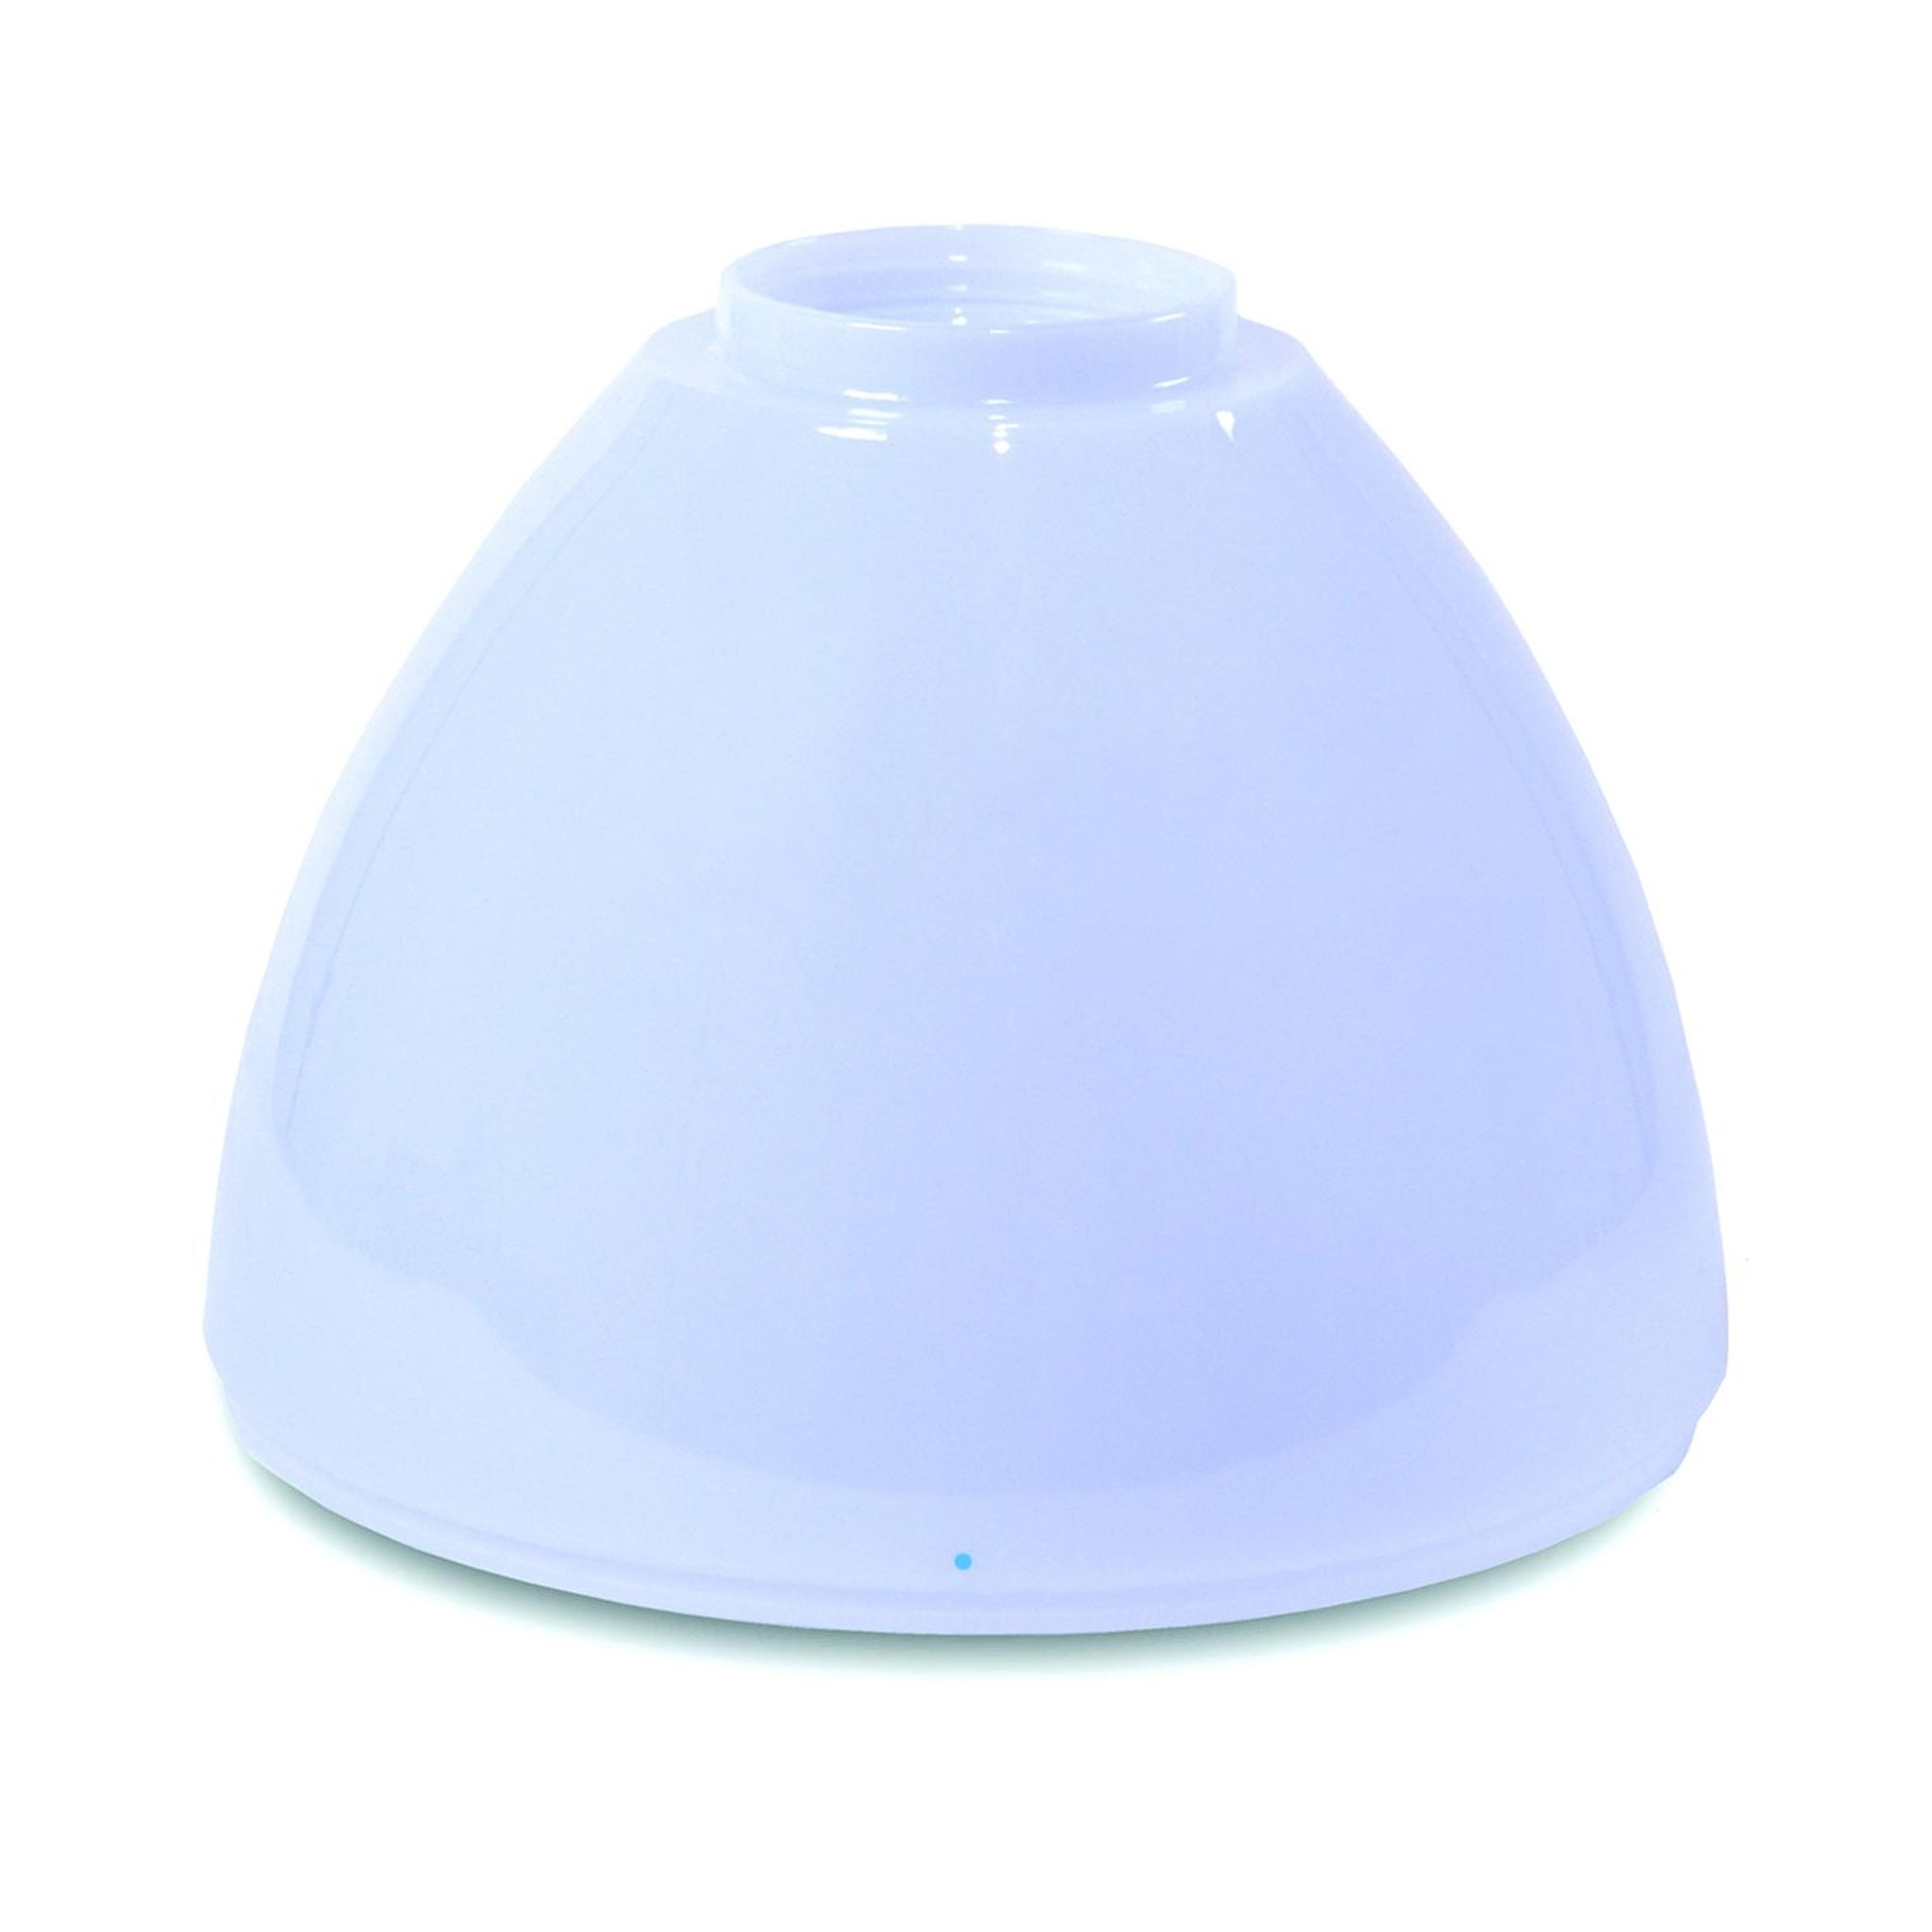 Water Tank HU06 for Humio Humidifer HU-1020A - Tribest